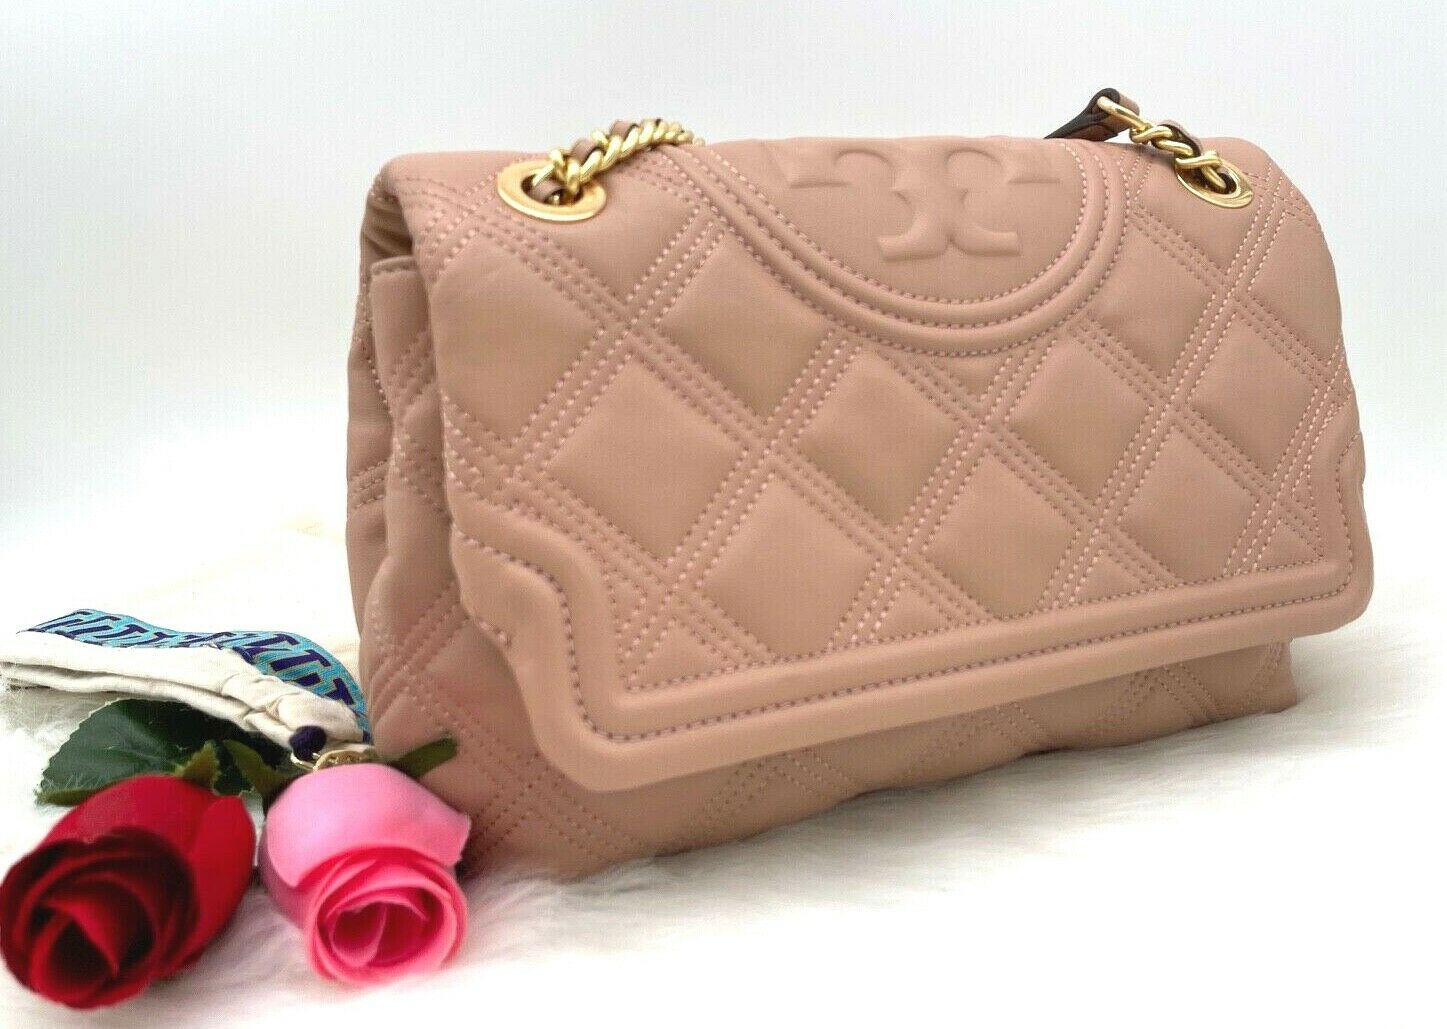 AUTH NWT 528 Tory Burch Fleming Quilted Soft Leather Convertible Shoulder Bag